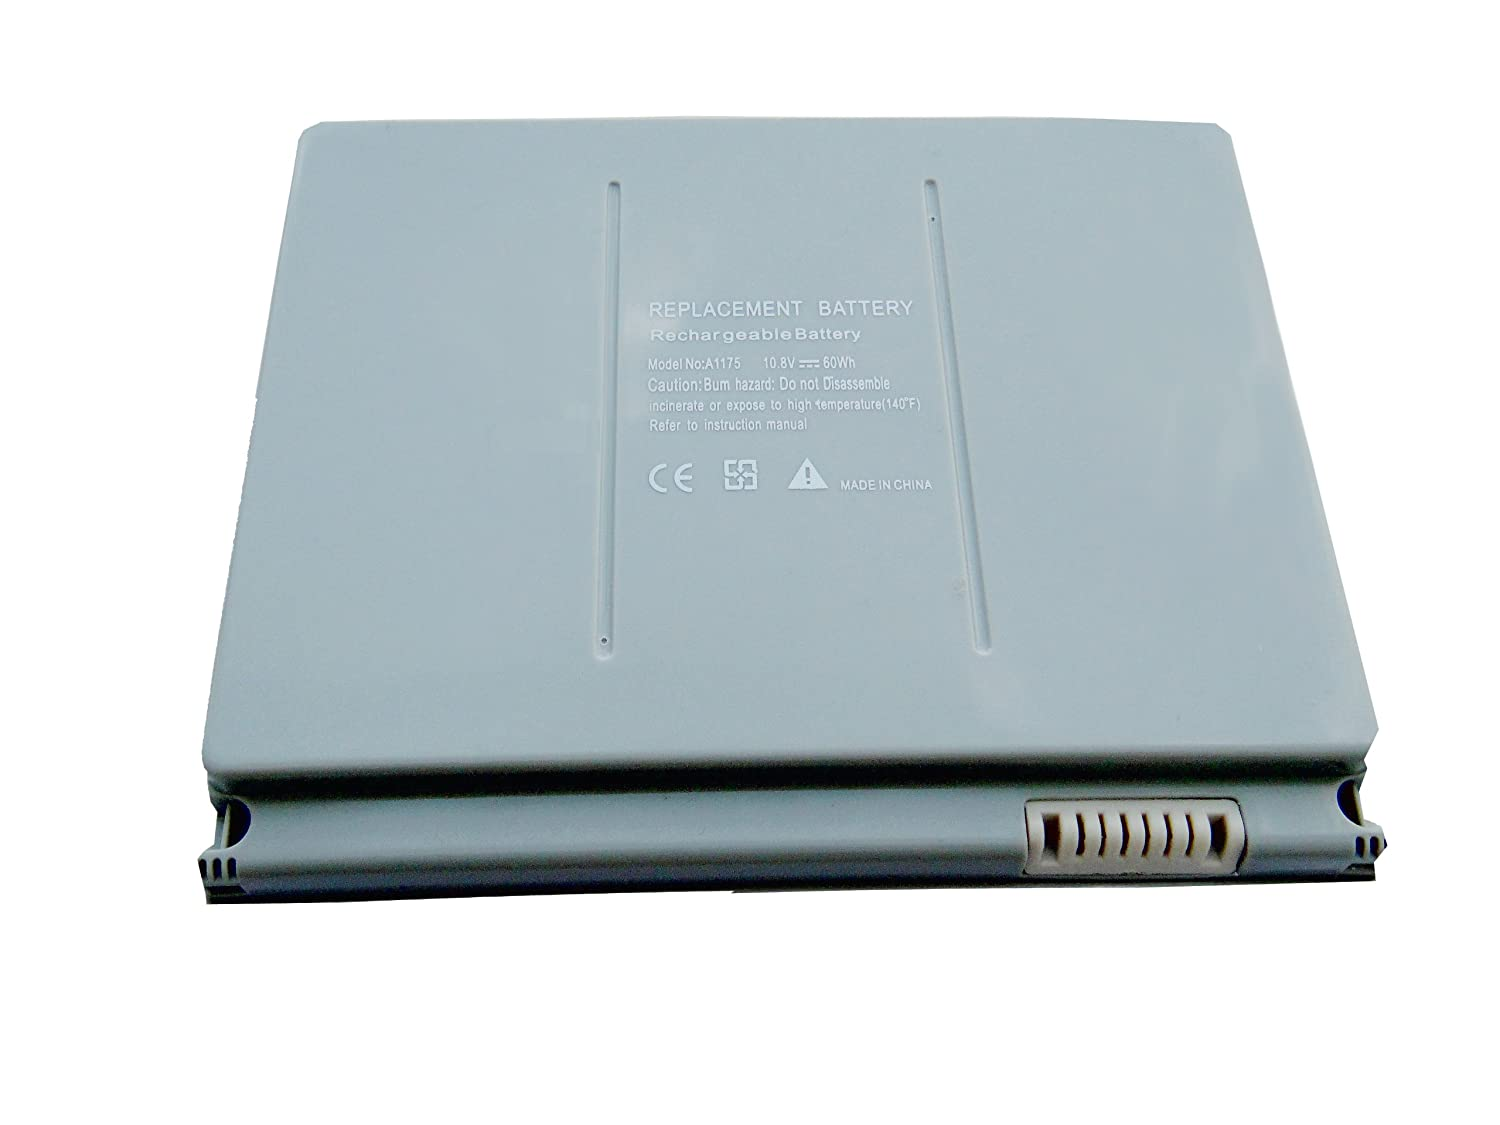 Amazon.com: Laptop Battery for Apple Macbook A1260 A1226 A1211: Computers &  Accessories